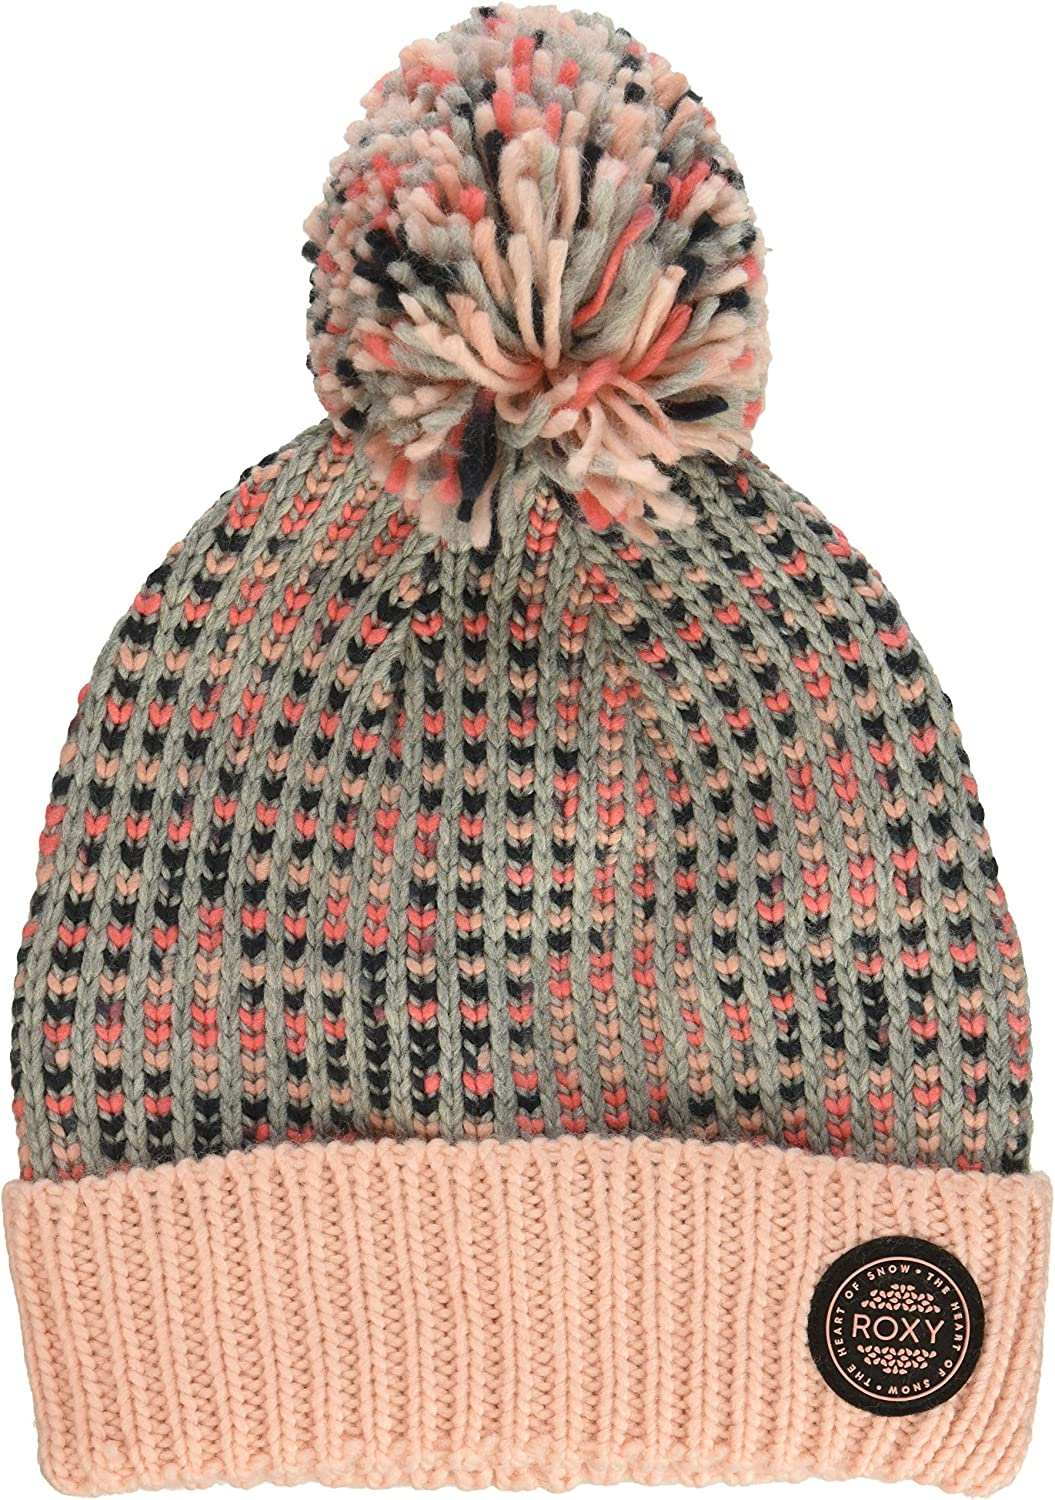 Roxy Girls Little Snowflurry Snow Beanie